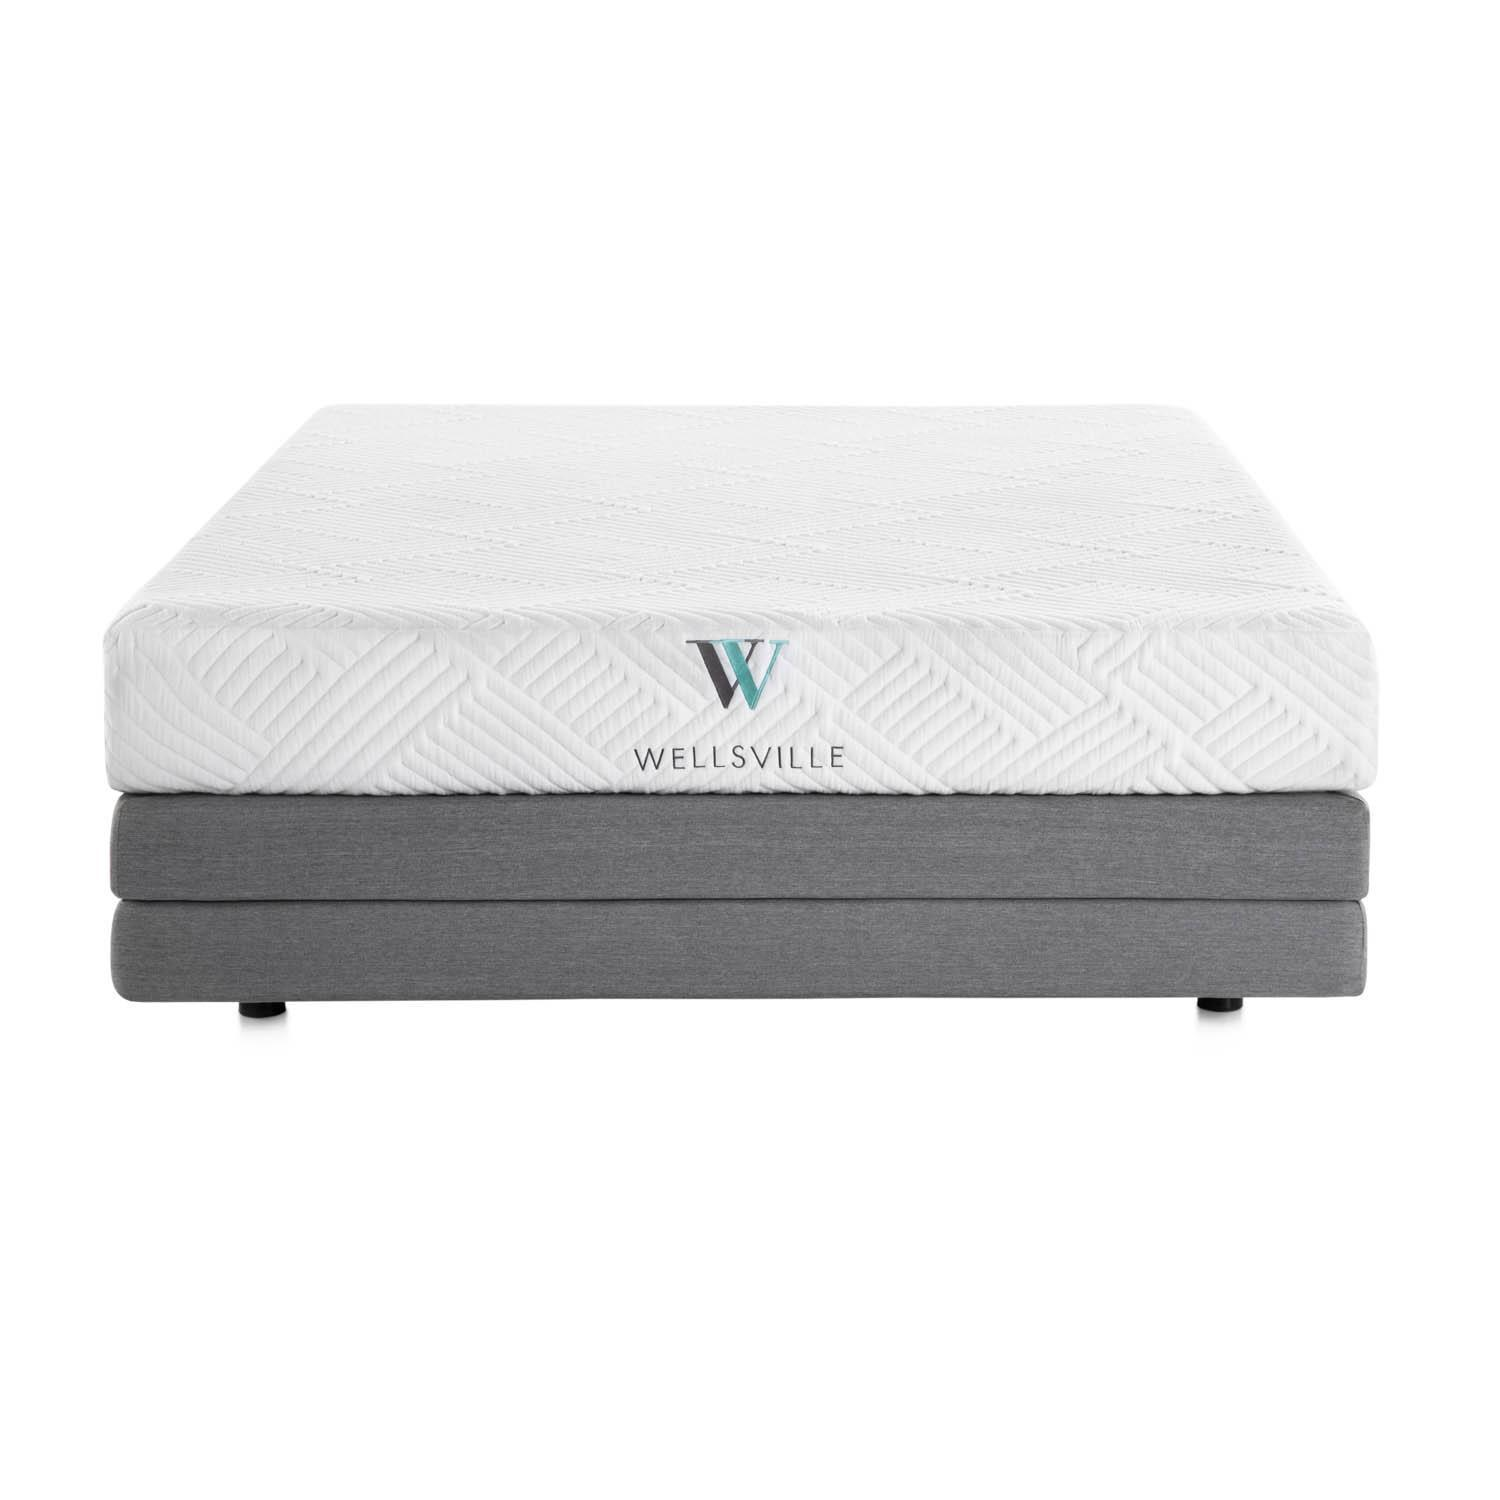 Wellsville 8 Inch Gel Foam Mattress Twin,Bayit Furniture Line